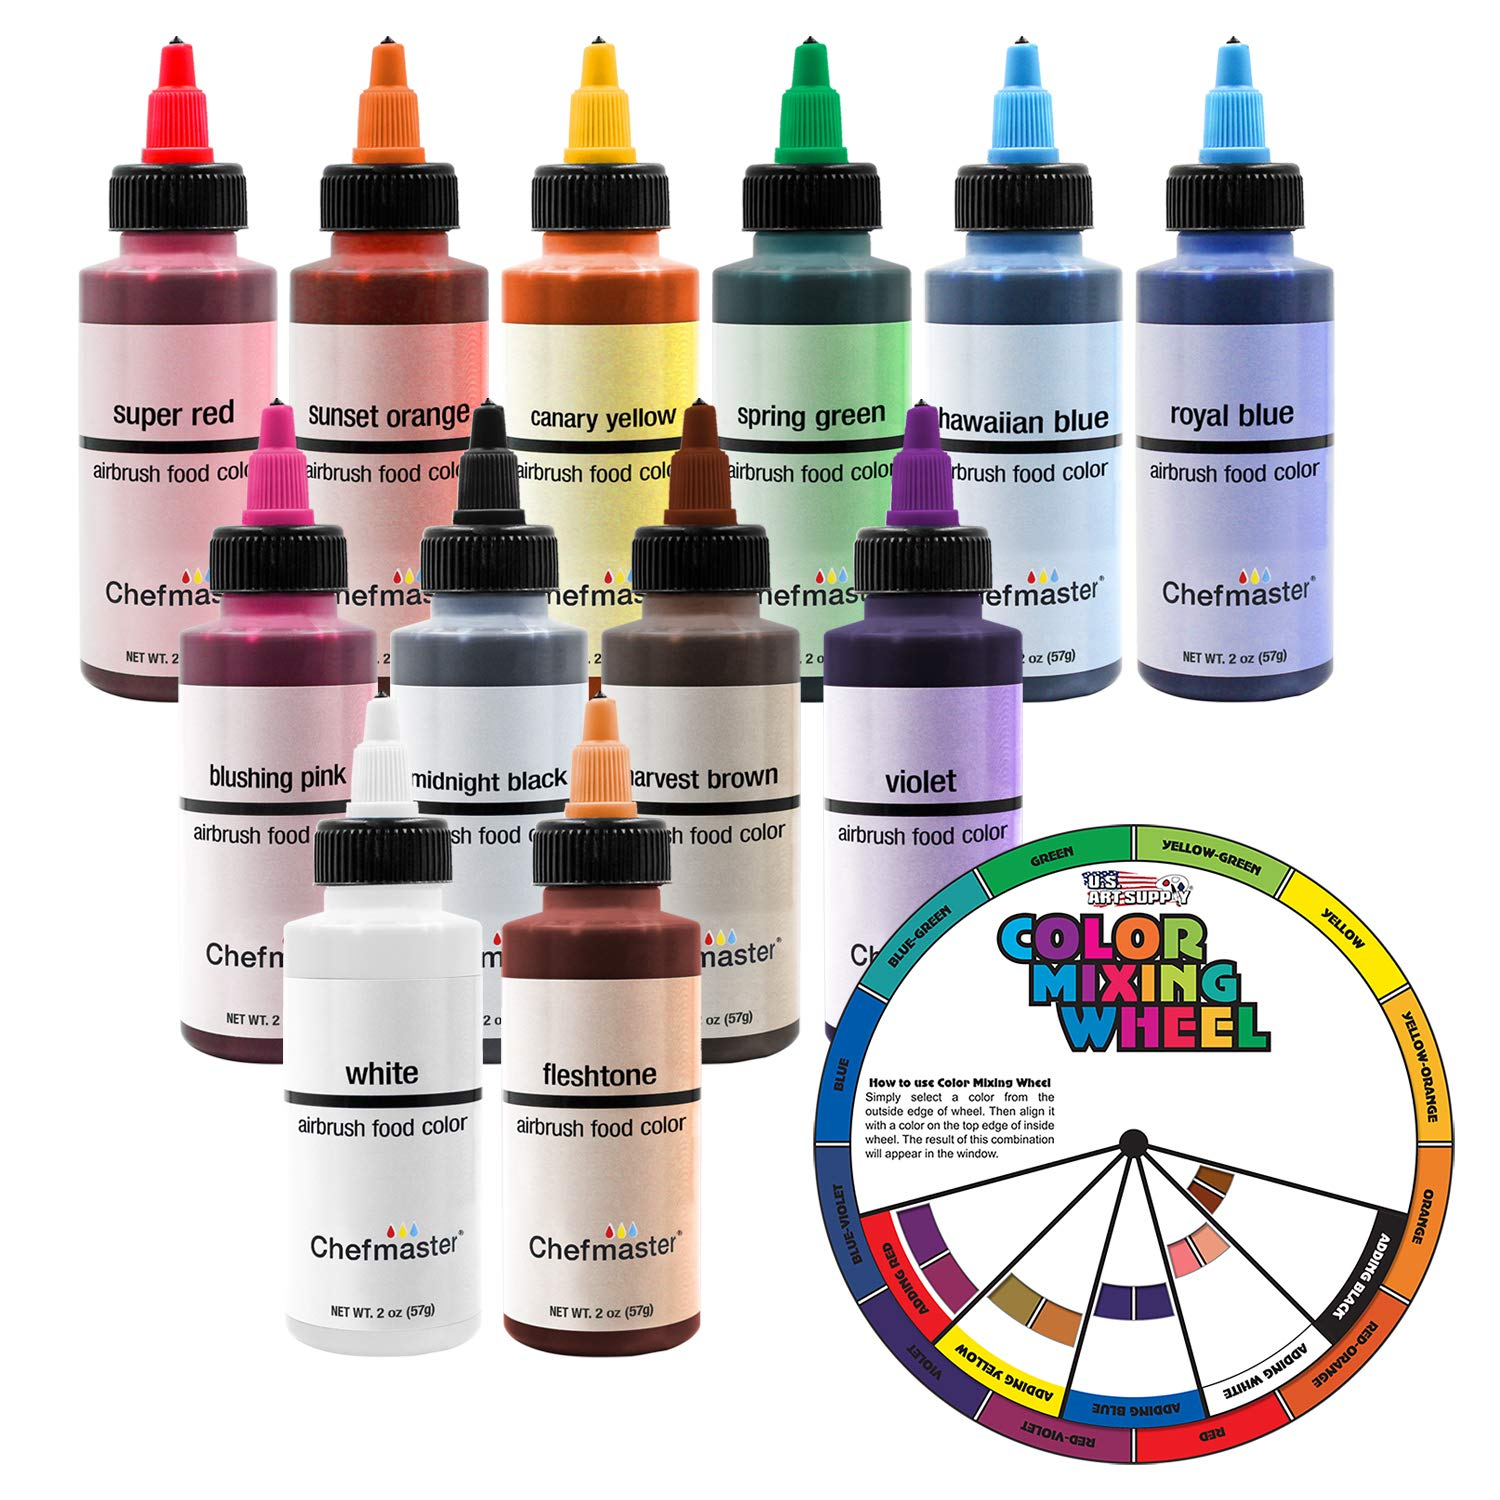 U.S. Cake Supply by Chefmaster Airbrush Cake Color Set - The 12 Most Popular Colors in 2.0 fl. oz. Bottles with Color Mixing Wheel